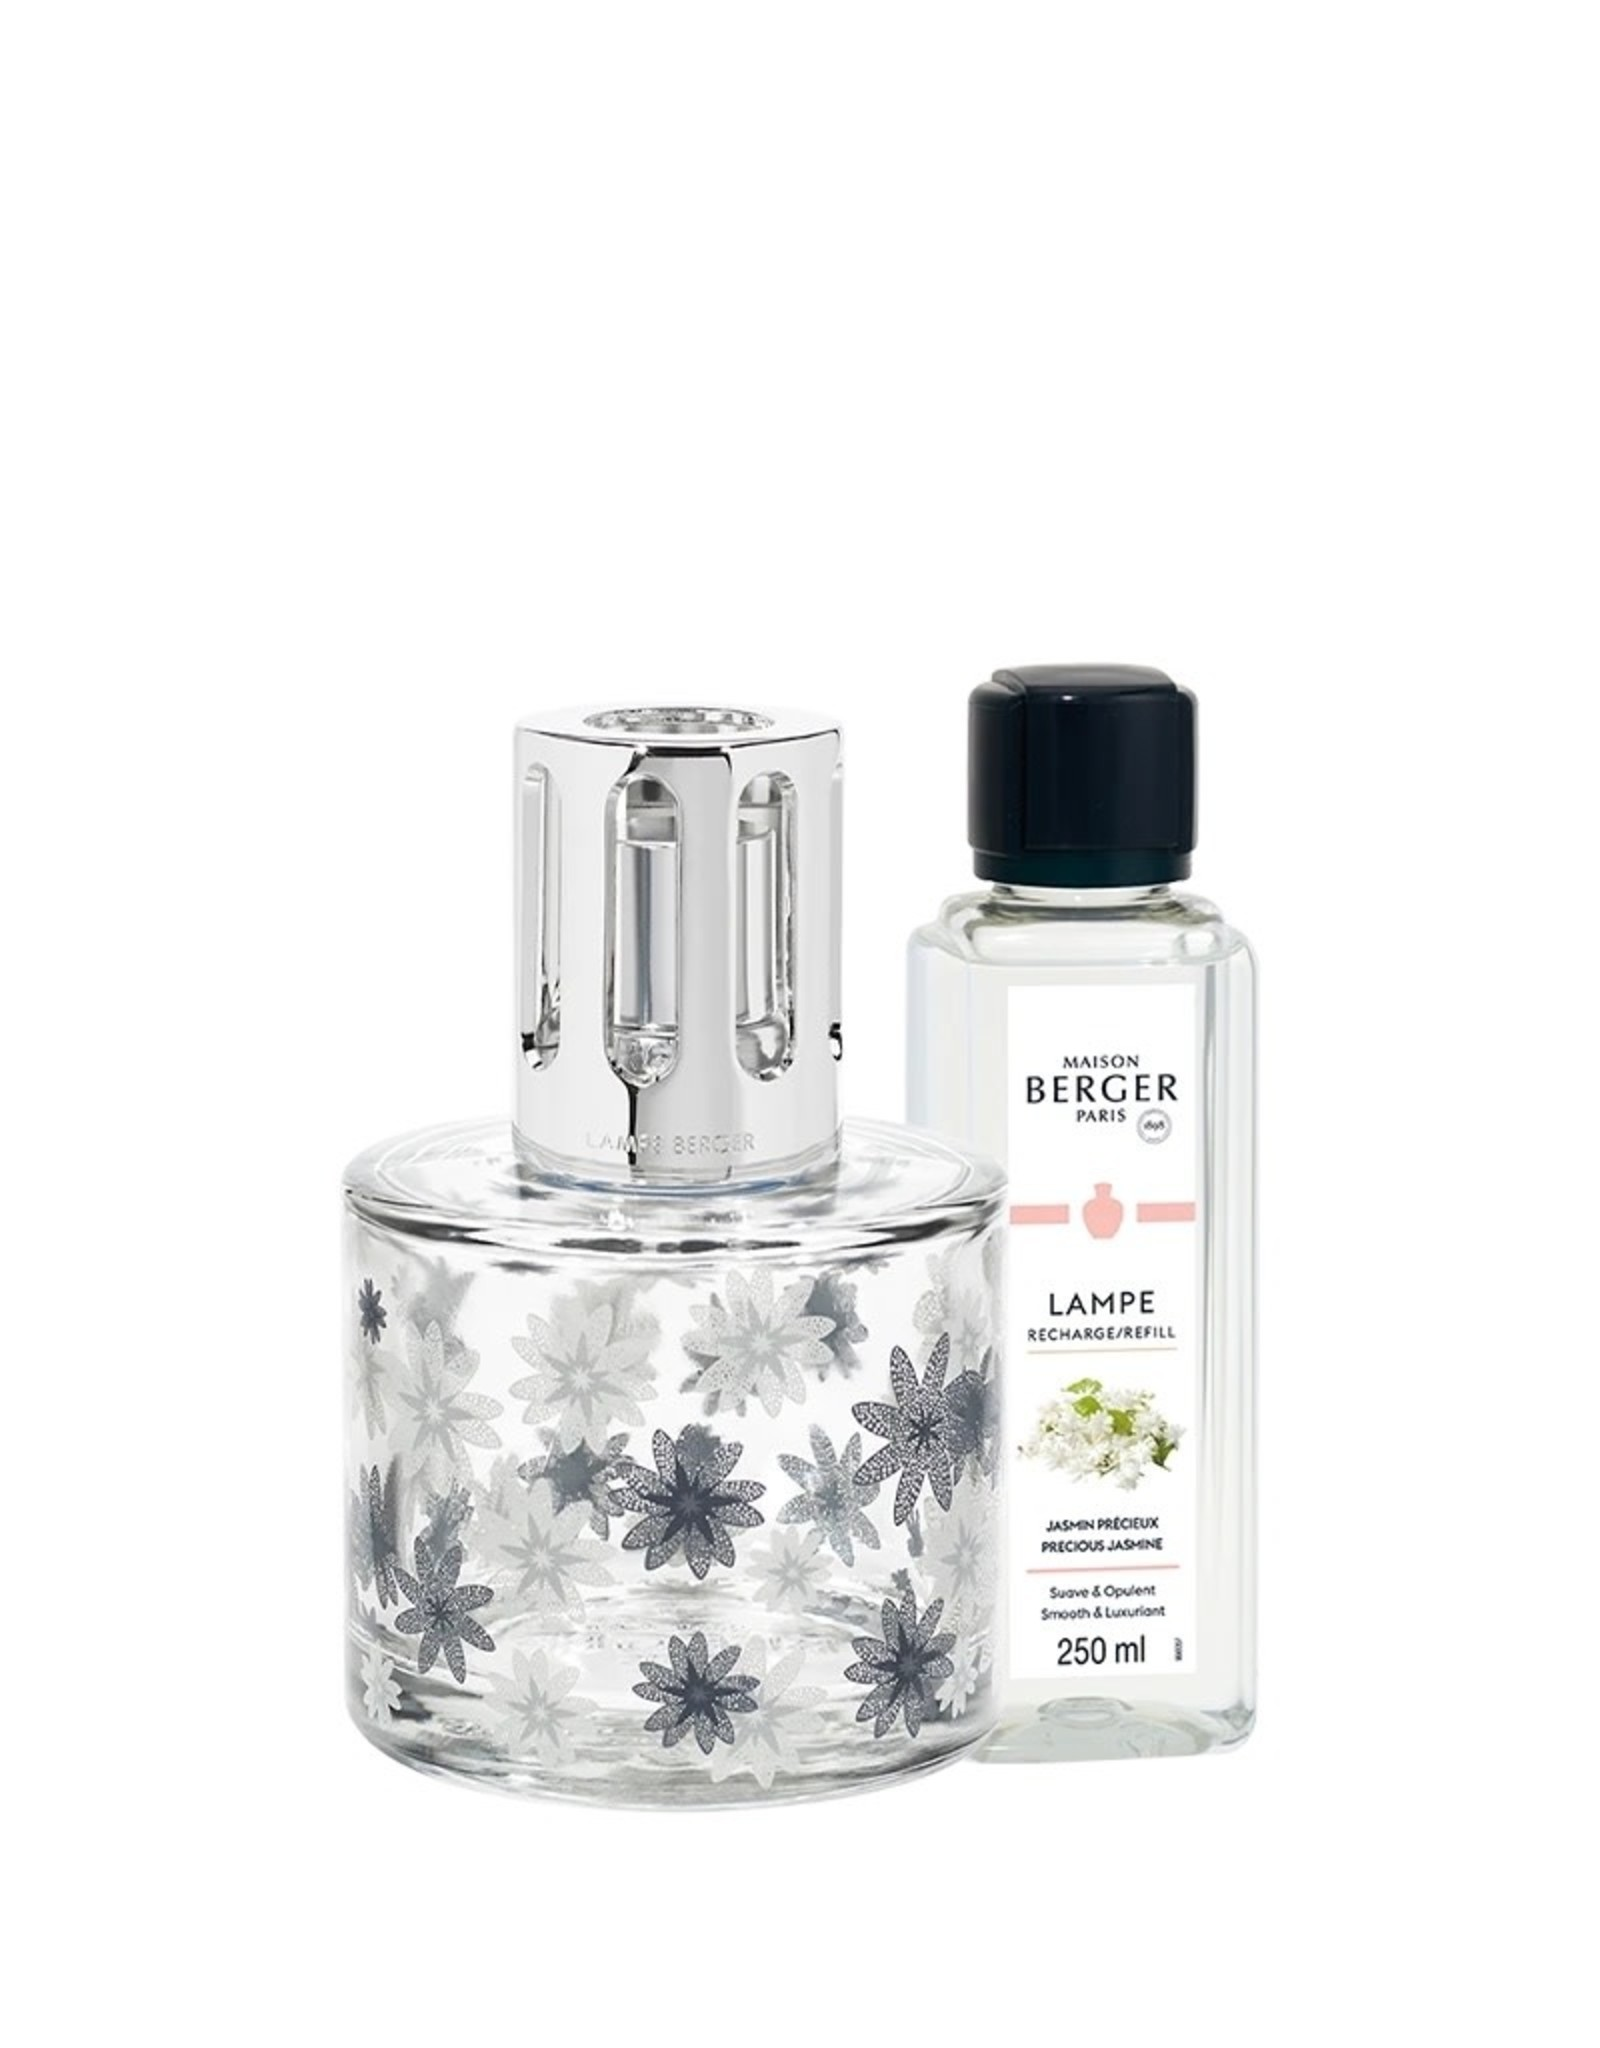 Lamp Berger Pure Floral Lamp Gift Set with Precious Jasmine